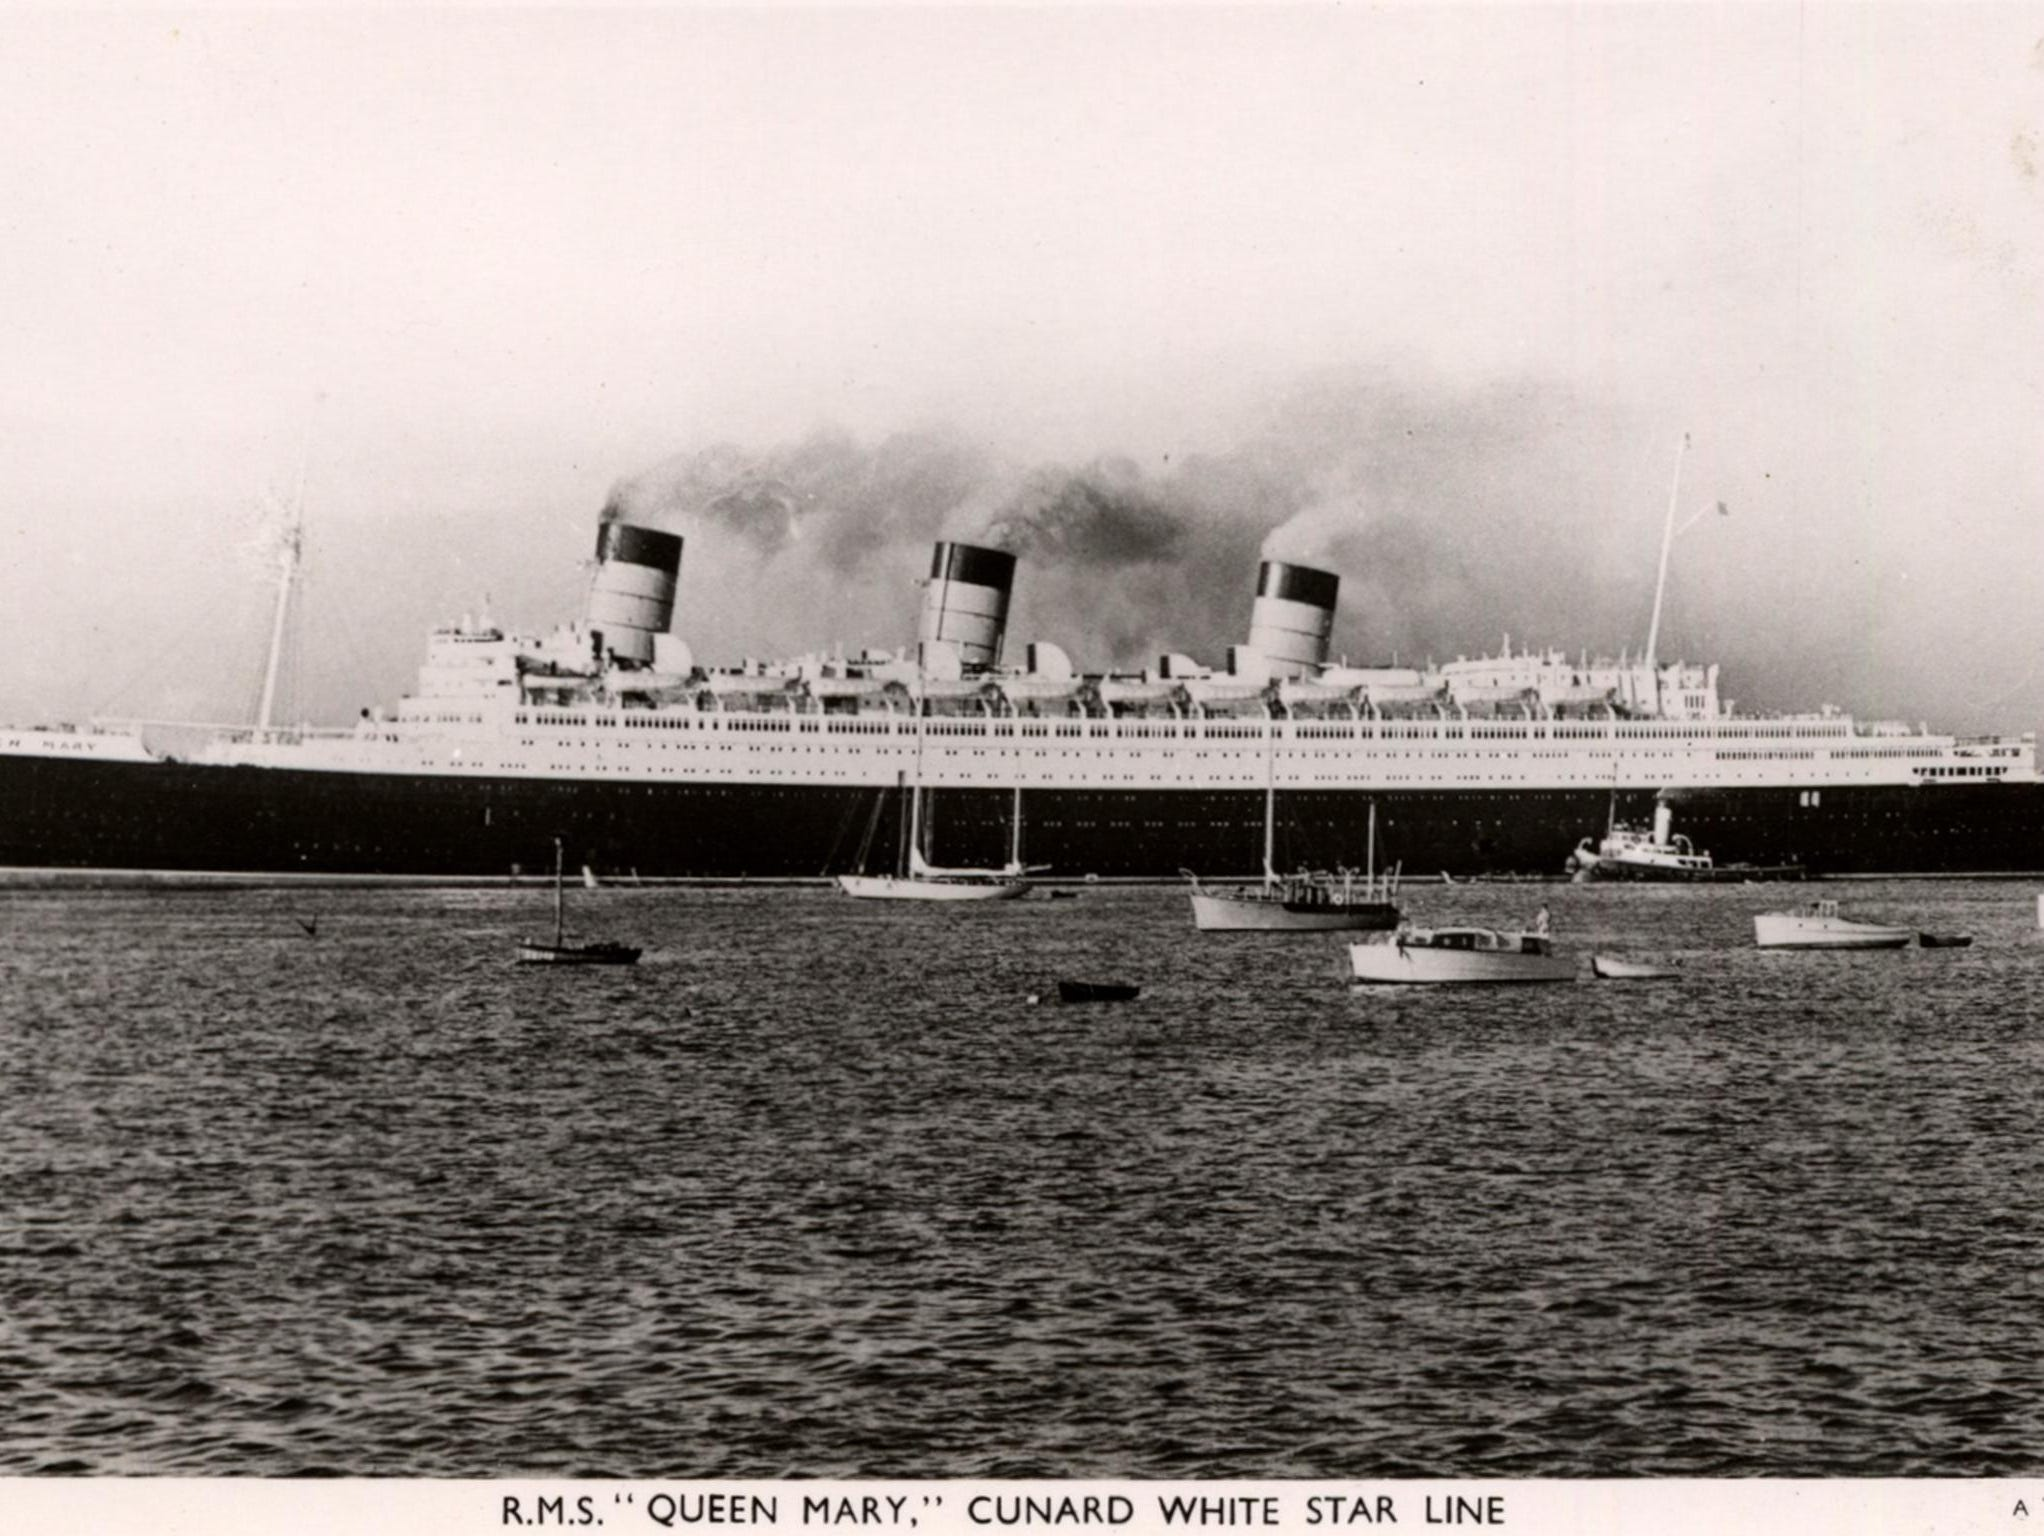 The Queen Mary measures 81,000 gross tons and has a length of 1,019 feet with a beam of 118 feet. As built, it carried 776 Cabin (later named First) Class, 784 Tourist (later named Cabin) and 579 Third (later named Tourist) Class passengers and was powered by steam turbines that drove four large propellers.